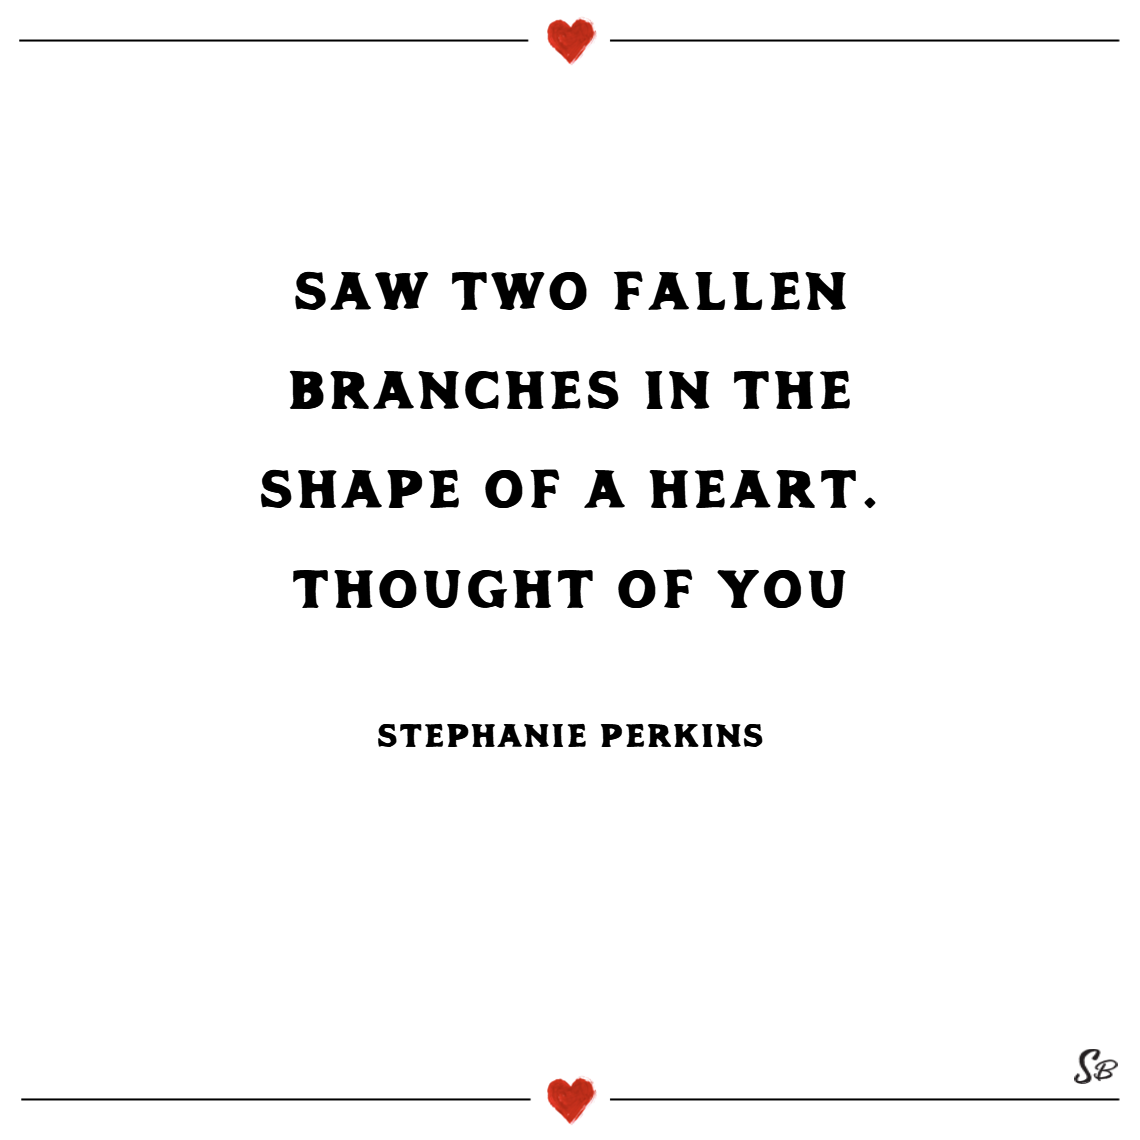 Saw two fallen branches in the shape of a heart. thought of you. –stephanie perkins